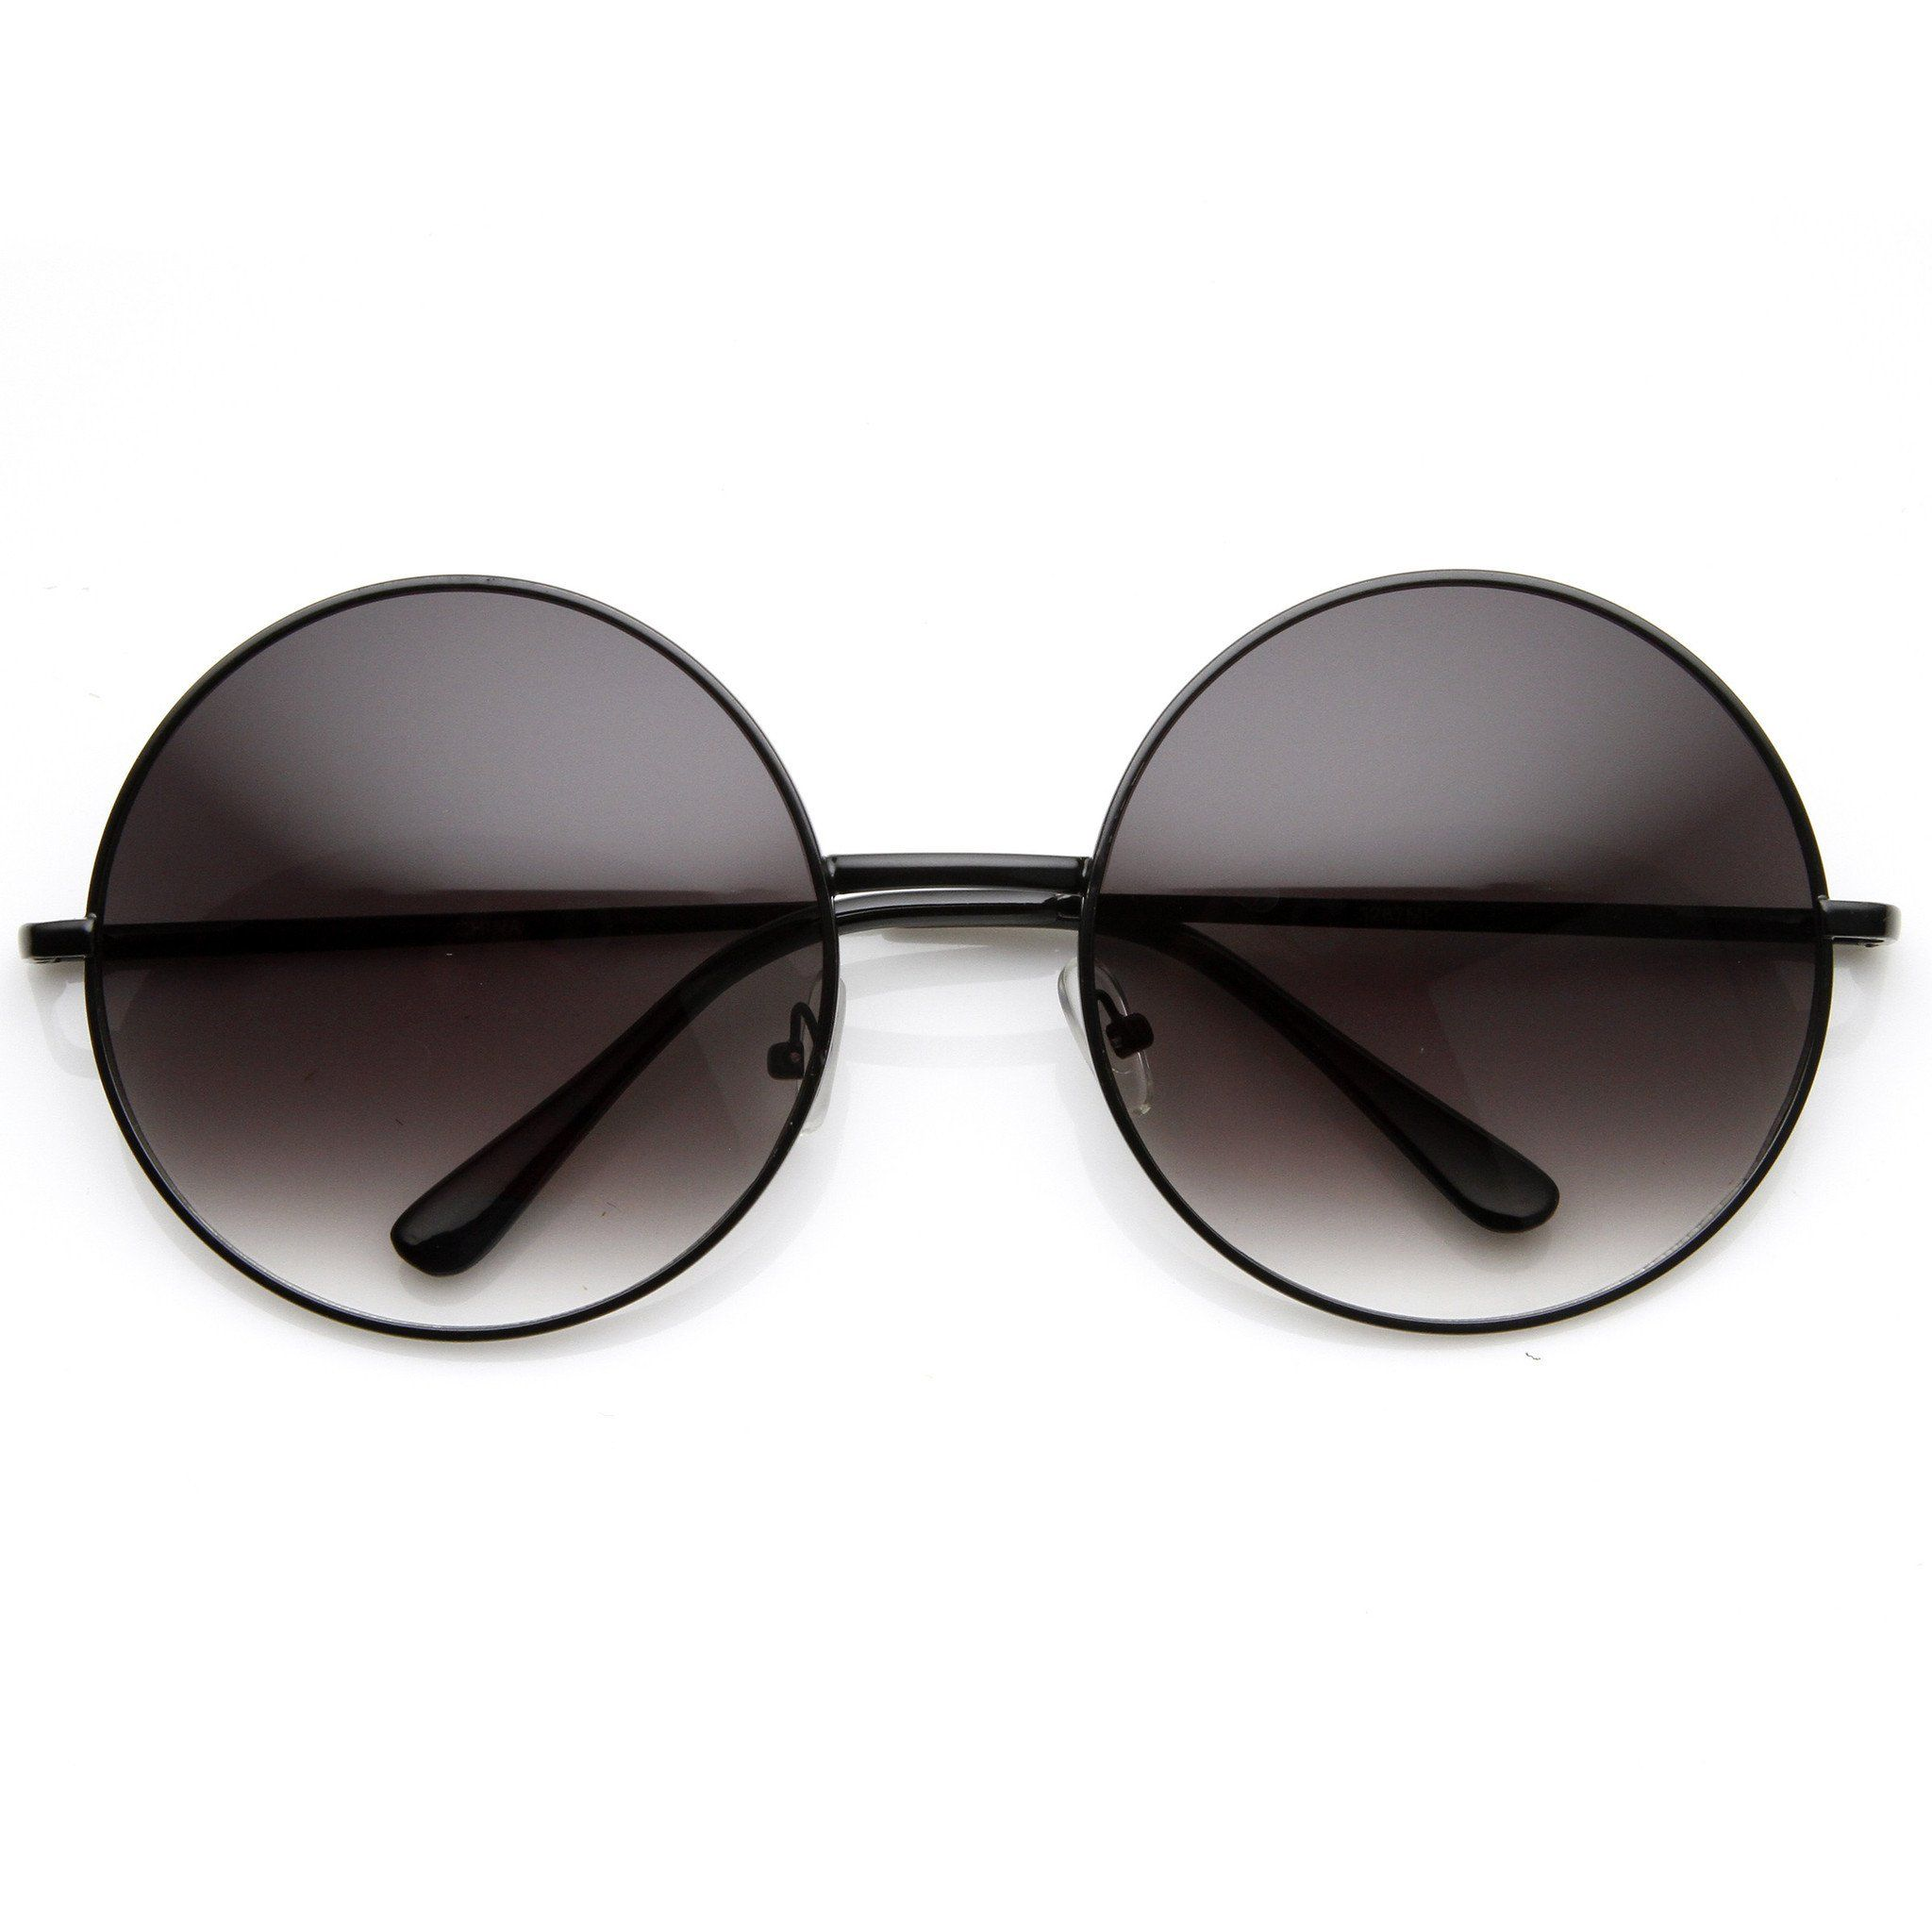 b32a8d9d103 Oversize Vintage Inspired Metal Round Circle Sunglasses 8370